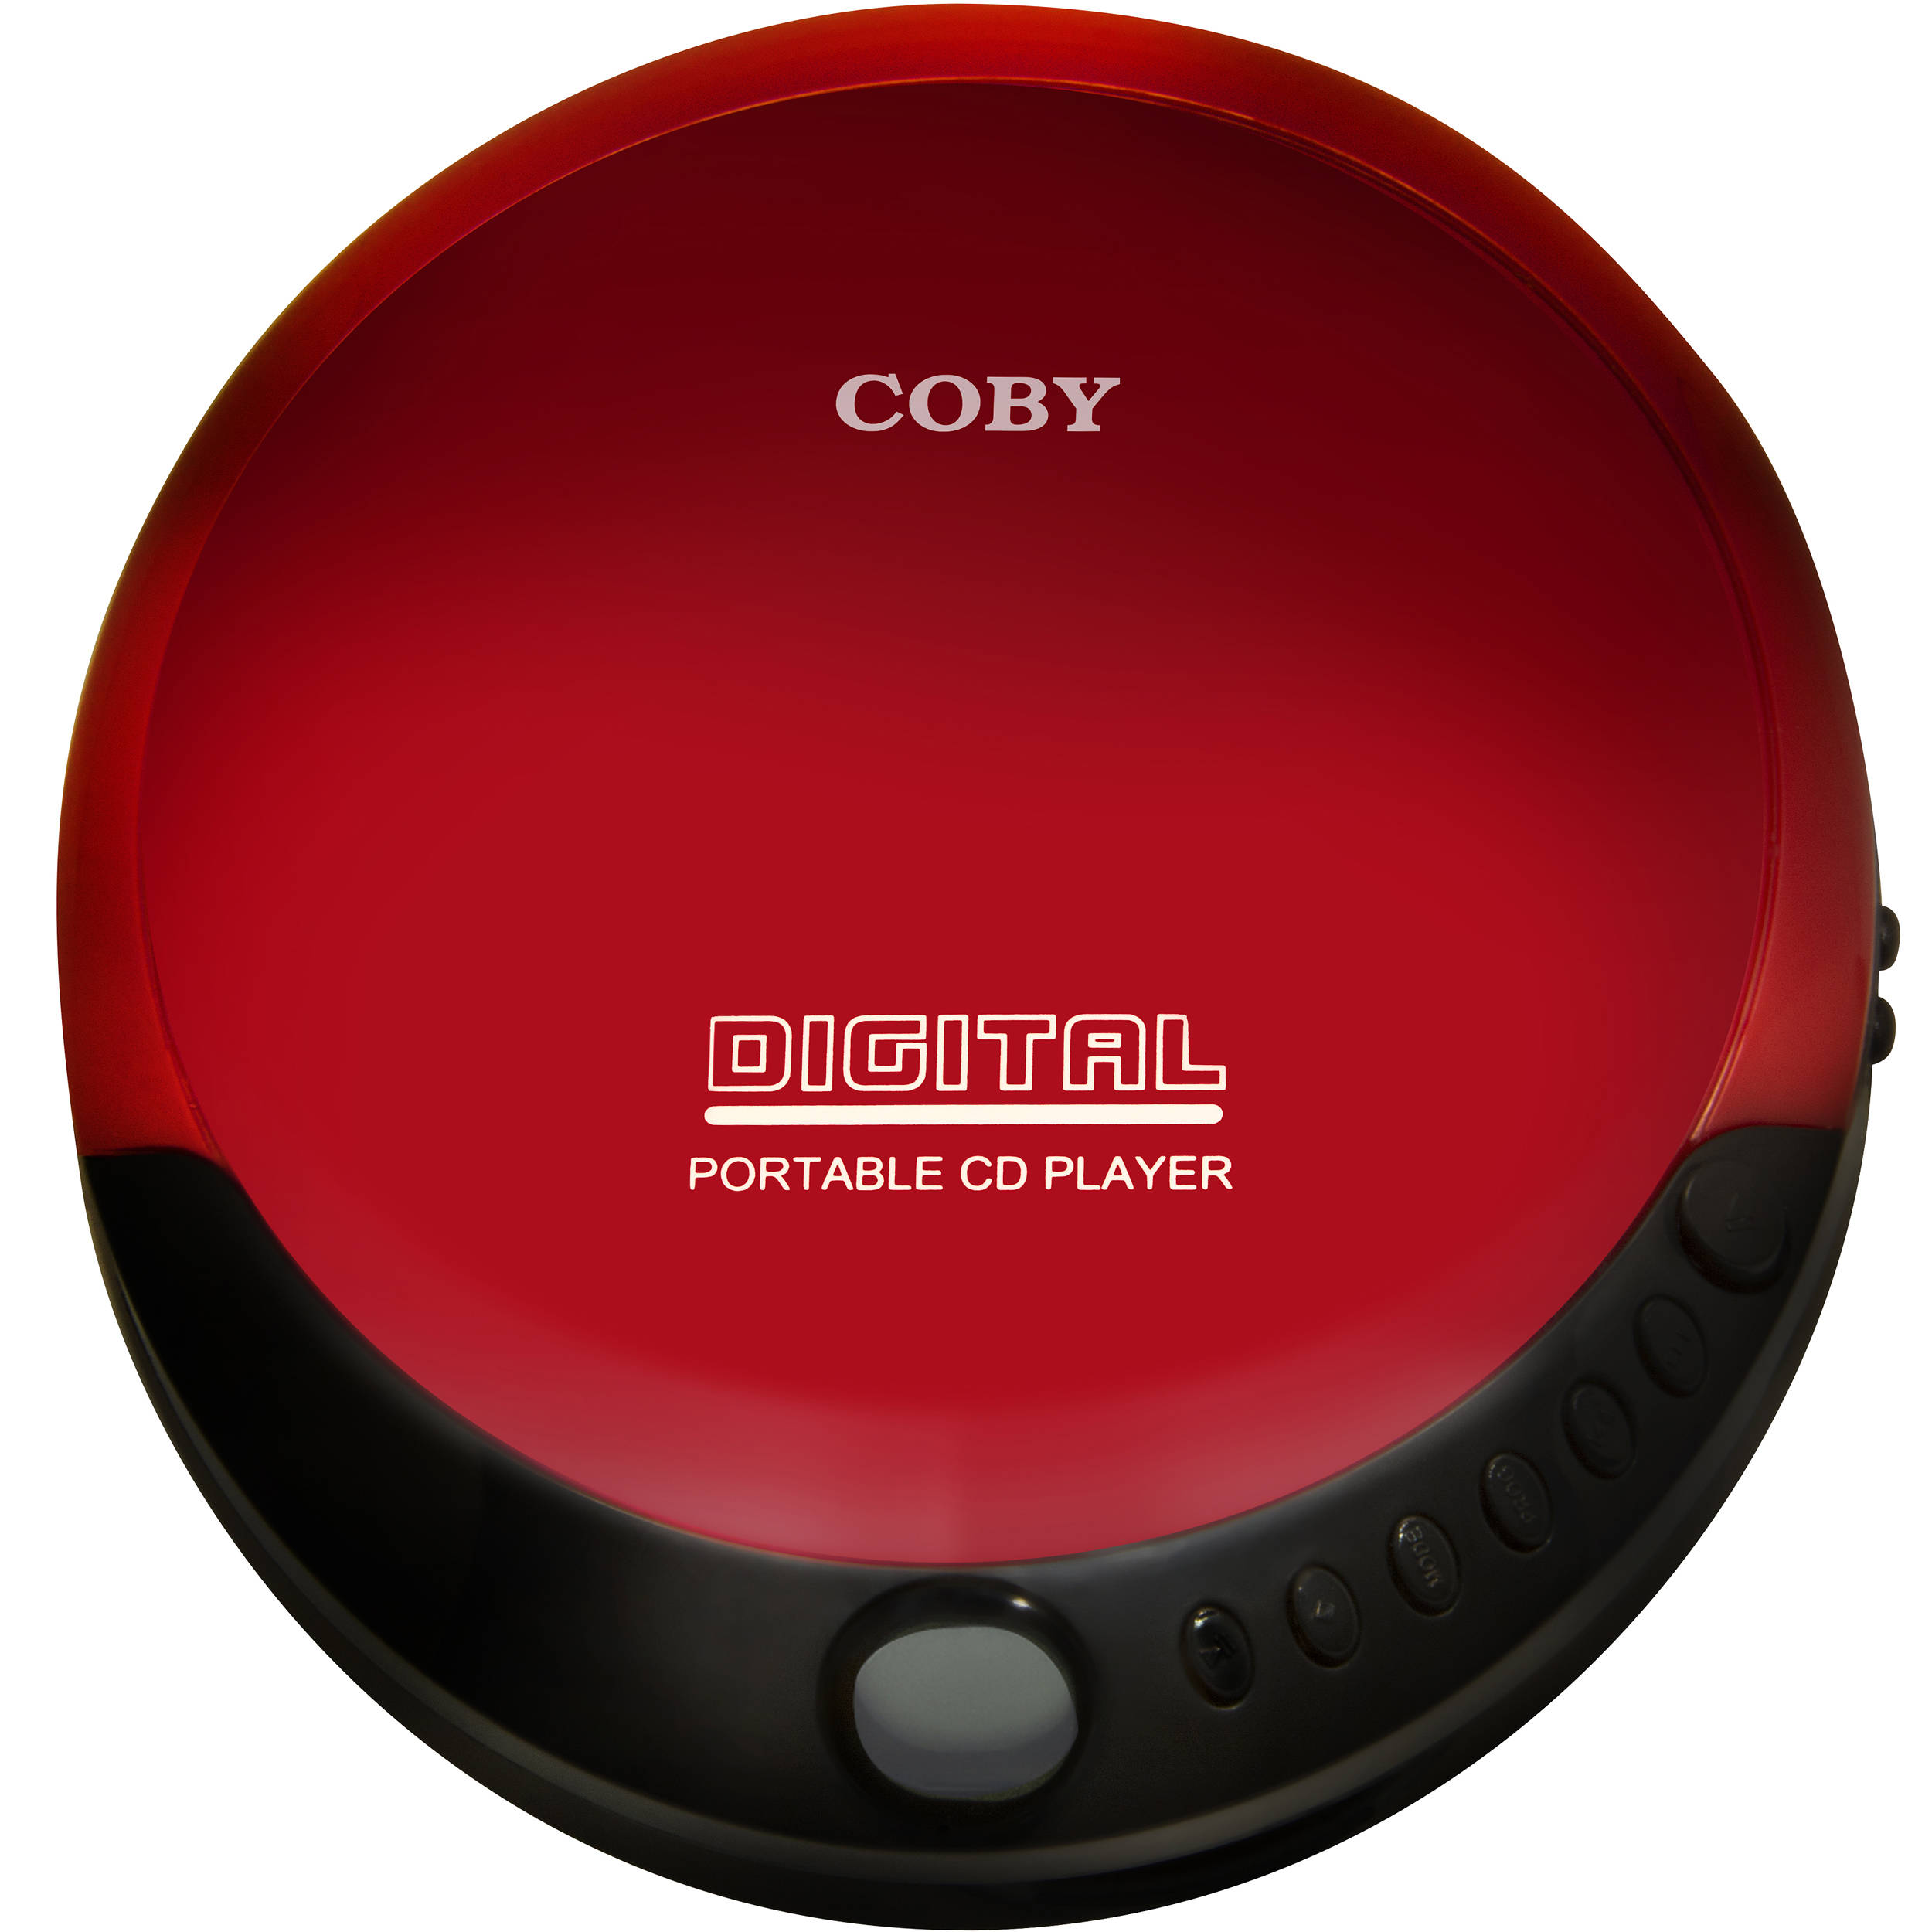 mobile porta cd moderno : Coby Portable Compact CD Player (Red) CD-190-RED B&H Photo Video